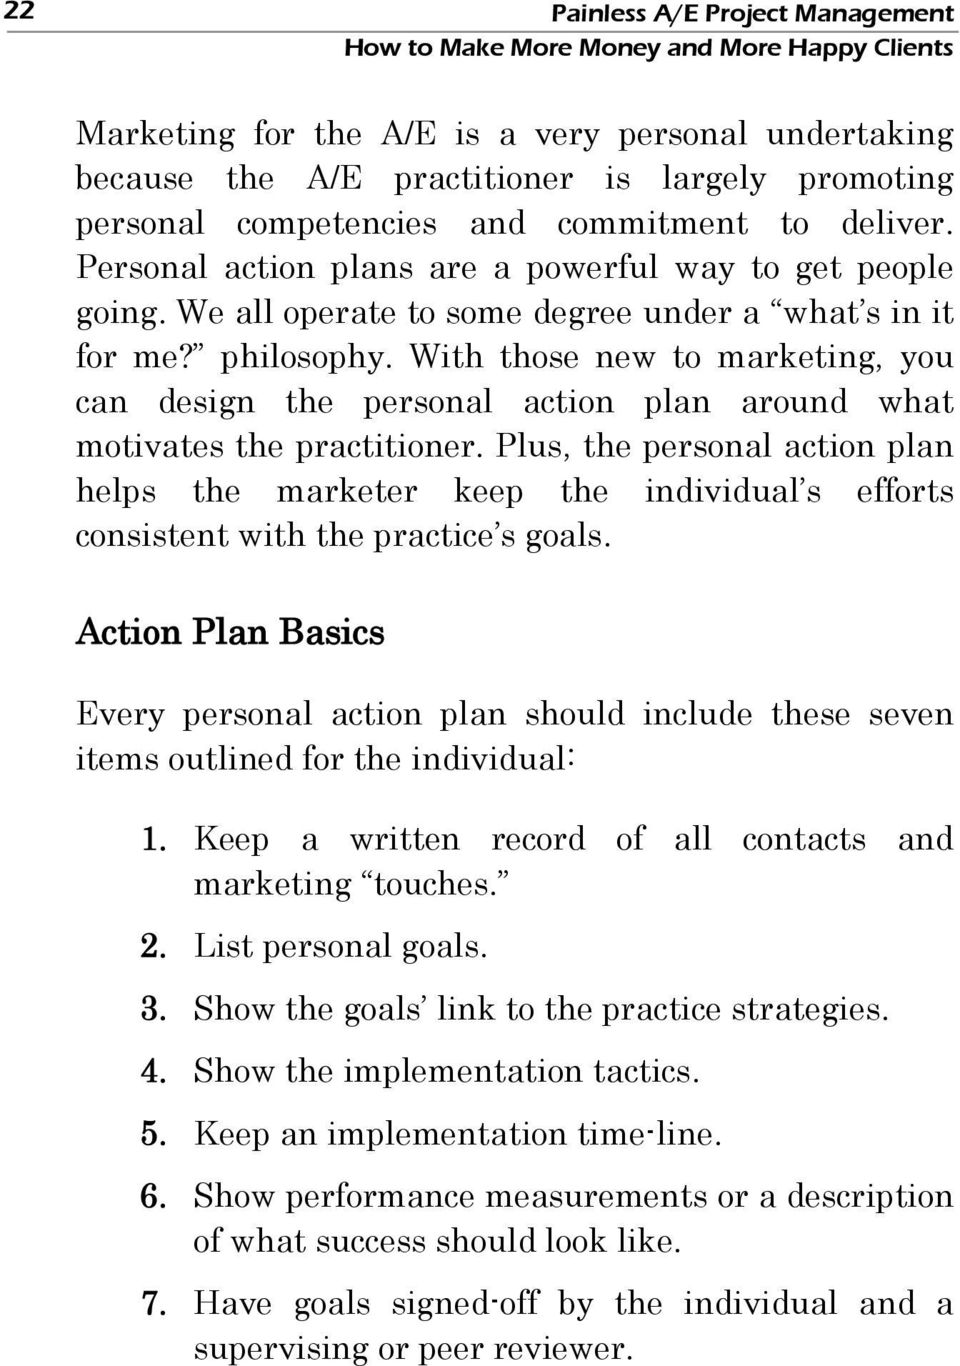 With those new to marketing, you can design the personal action plan around what motivates the practitioner.